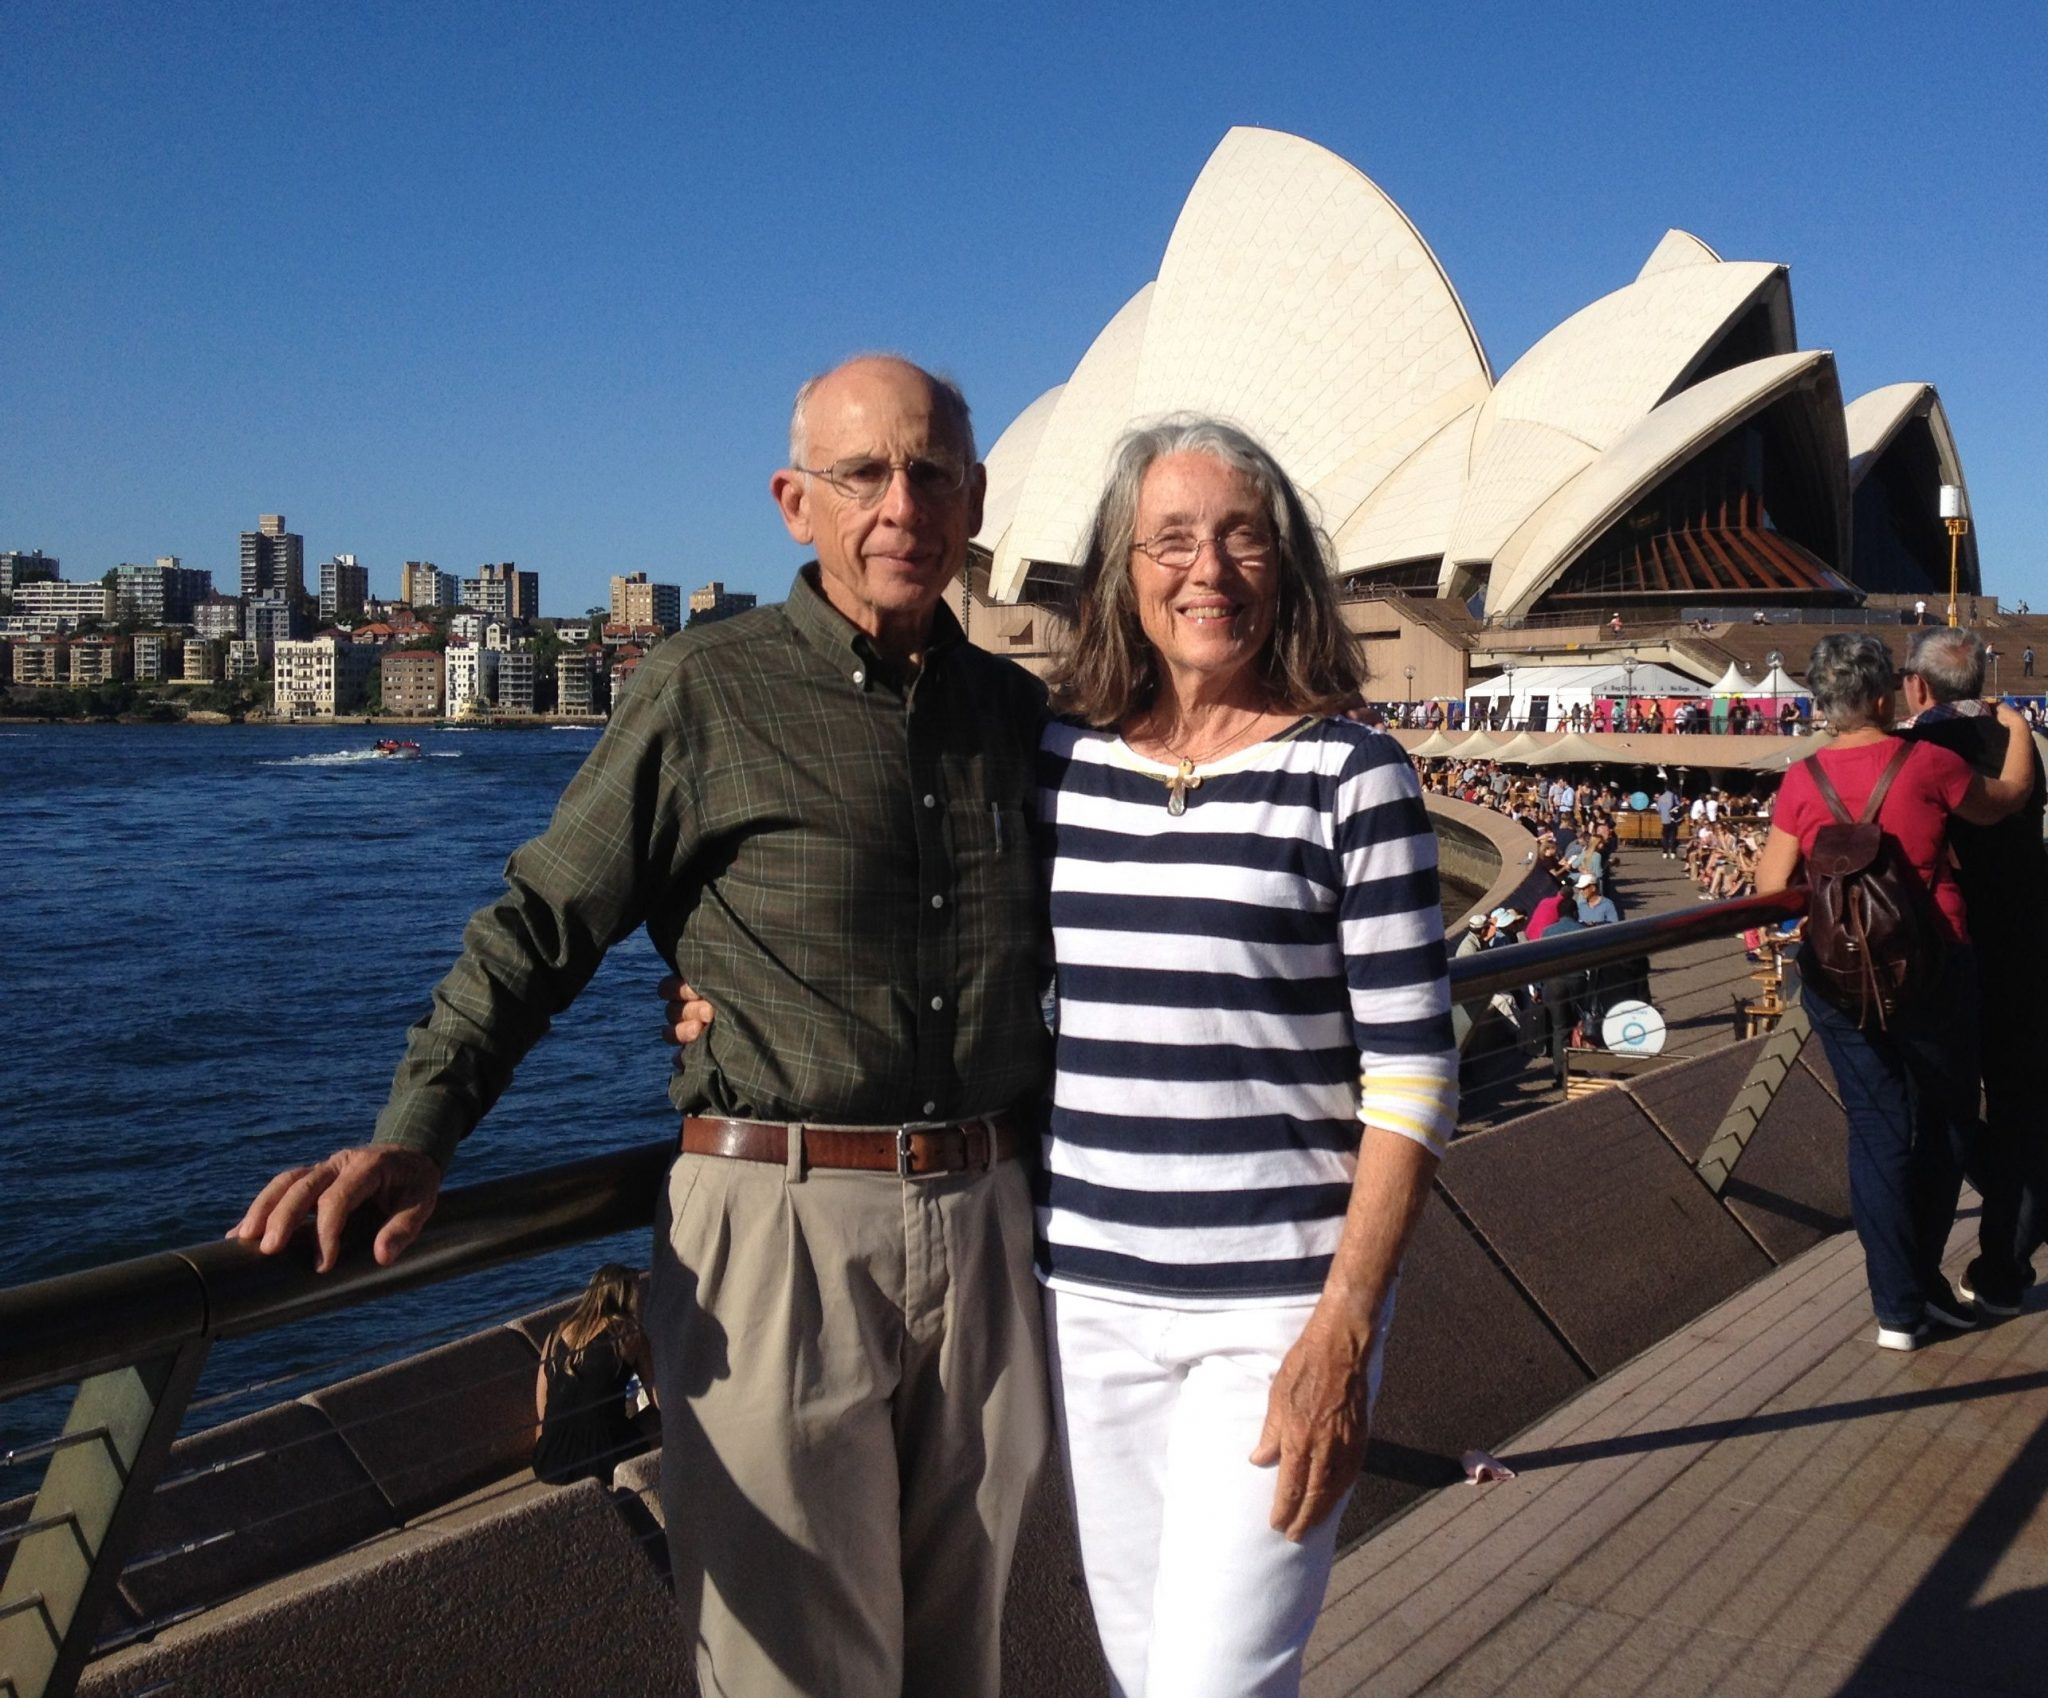 40. Jeff and I at the Sydney Opera House, November 2015